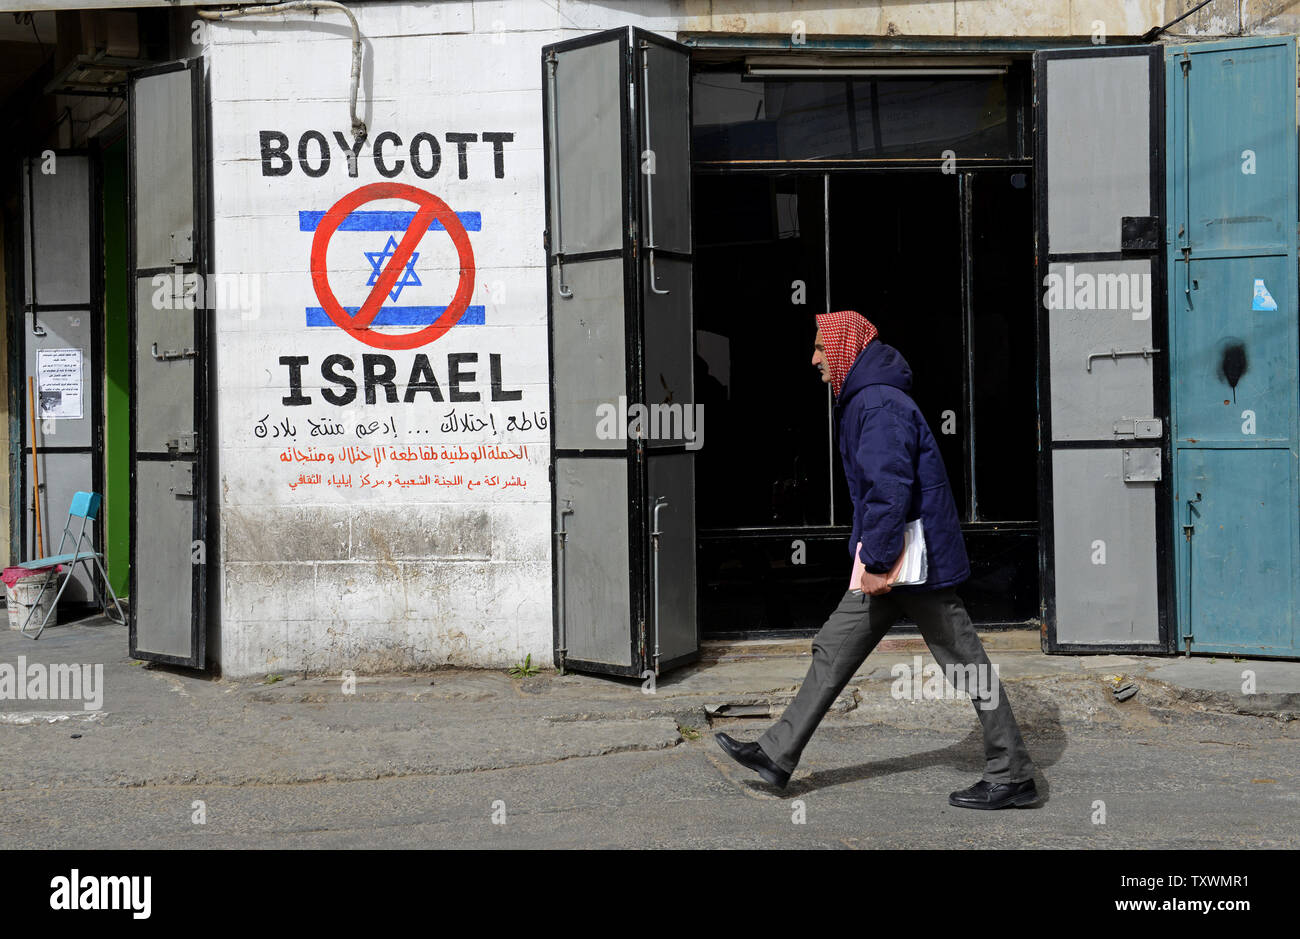 A Palestinian walks by graffiti reading 'Boycott Israel' at the entrance to the Beit Jibrin Refugee Camp in Bethlehem, West Bank, February 11, 2015. A high level national Palestinian committee announced it has instructed stores across the West Bank to ban products from six major Israeli companies, which are: Tnuva, the Strauss Group, Osem, Elite Prigate and Jafora-Tabori. The ban is meant to countermeasure Israel's decision to withhold Palestinian tax revenue it collects on behalf of the Palestinian Authority. West Bank grocers  must stop selling Israeli products within two weeks from today. P - Stock Image